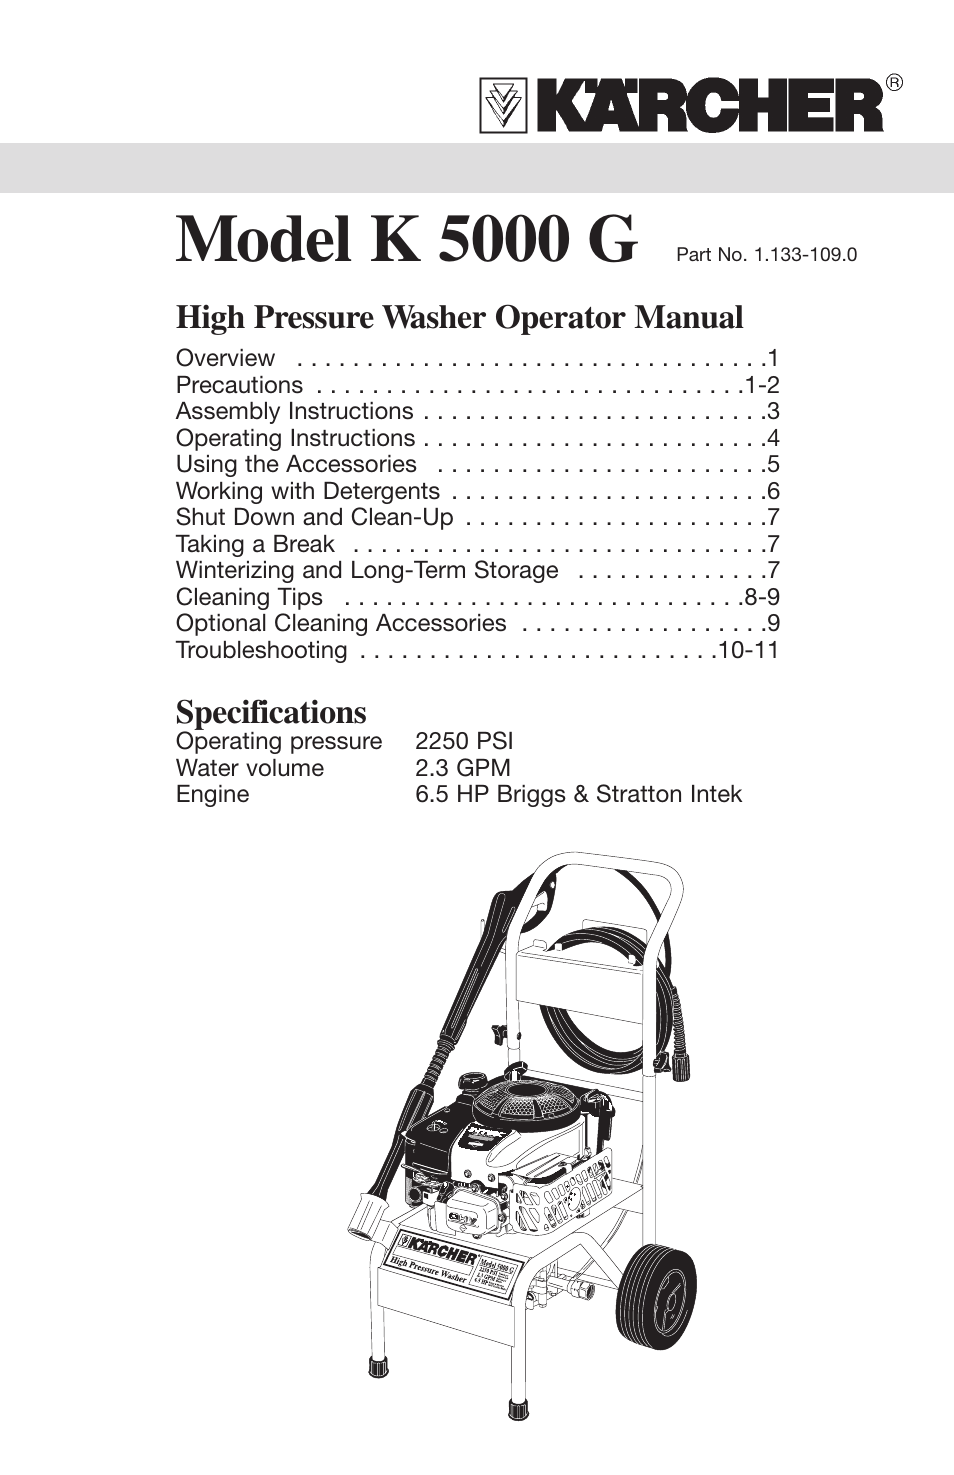 Karcher K 5000 G User Manual | 12 pages